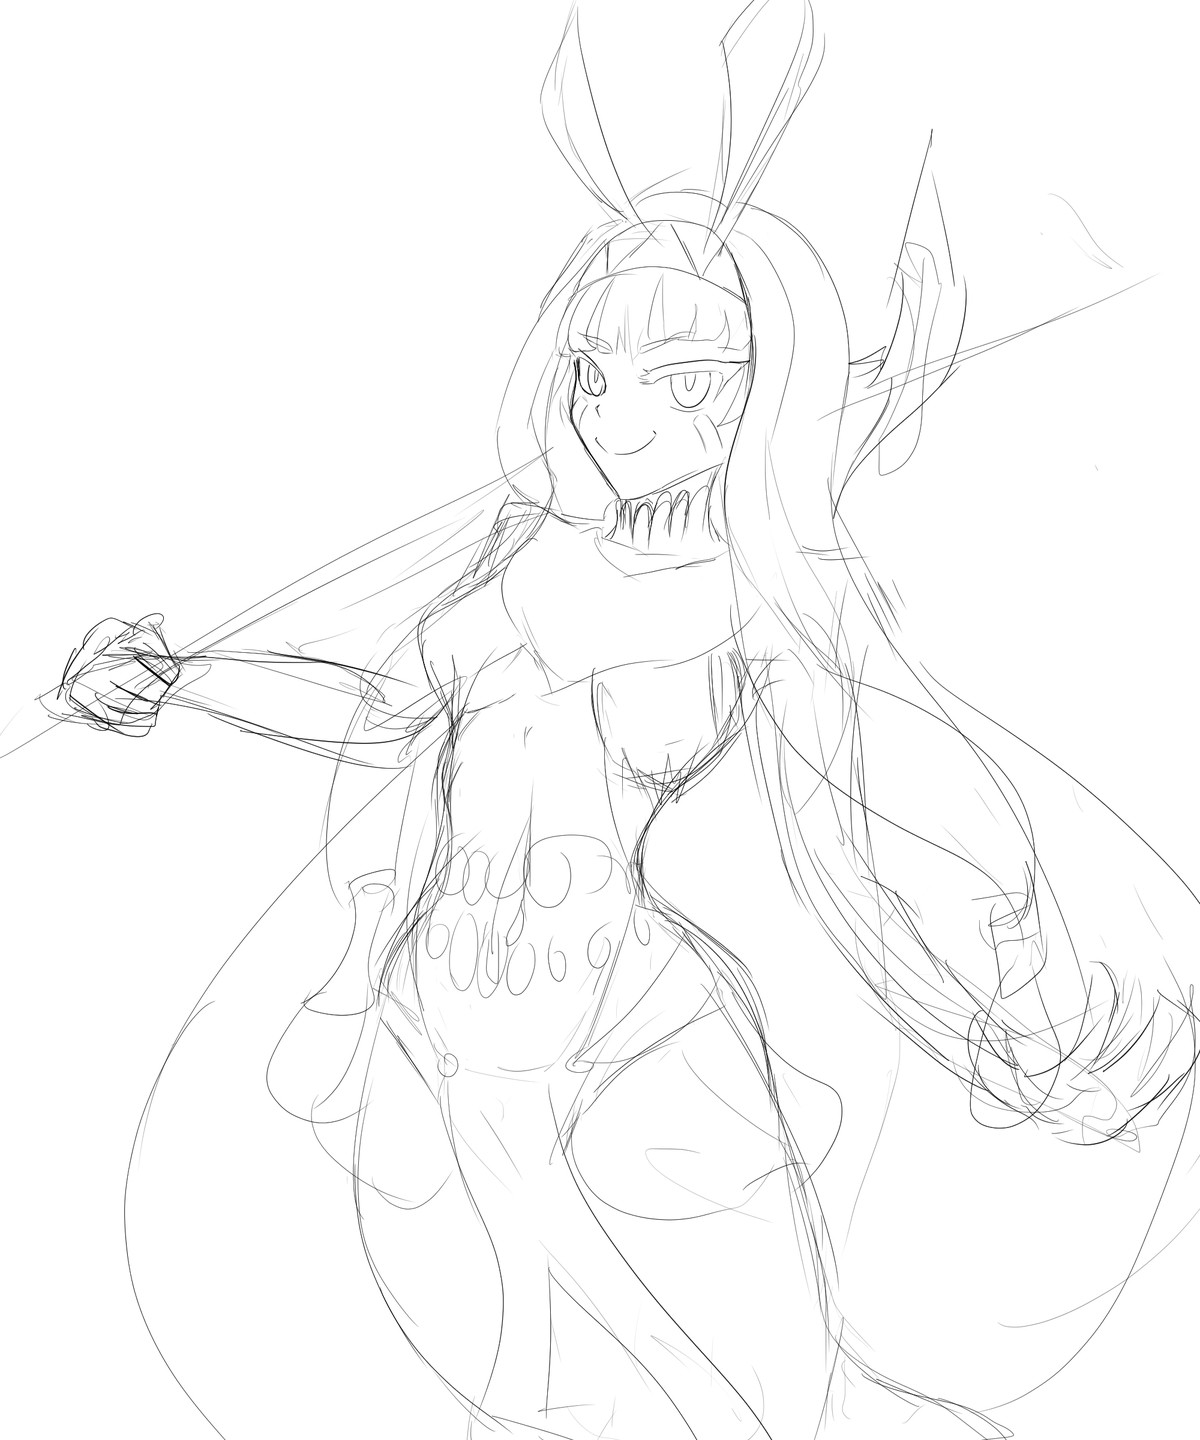 Nitocris sketch + lucky bastard roll. AYY LMAO 120 QUARTZ join list: GBArt (261 subs)Mention History.. 90 Quartz niBBa step your gacha luck up